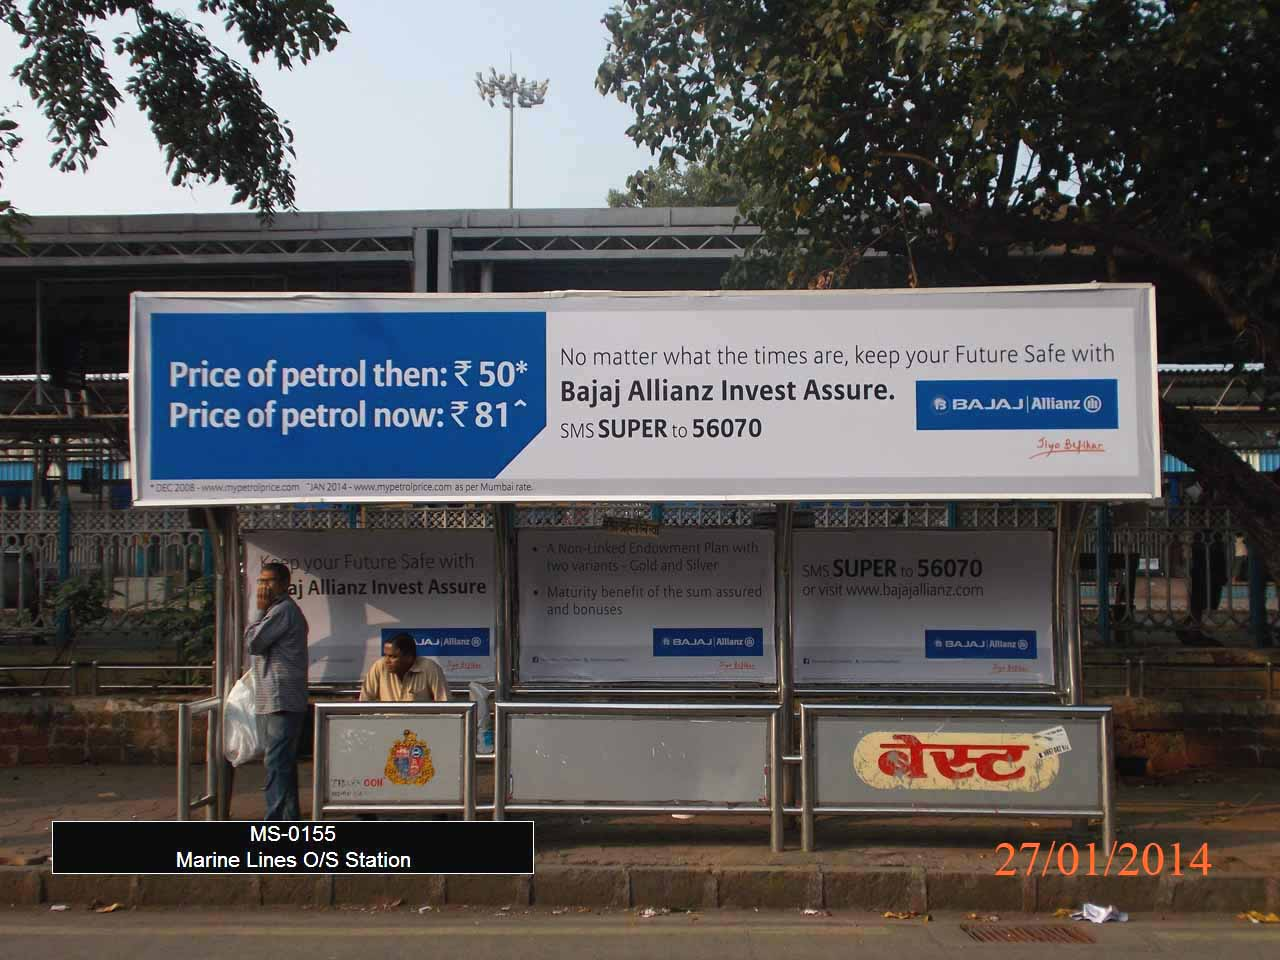 Outdoor Advertising in Bus Shelter Marine Lines